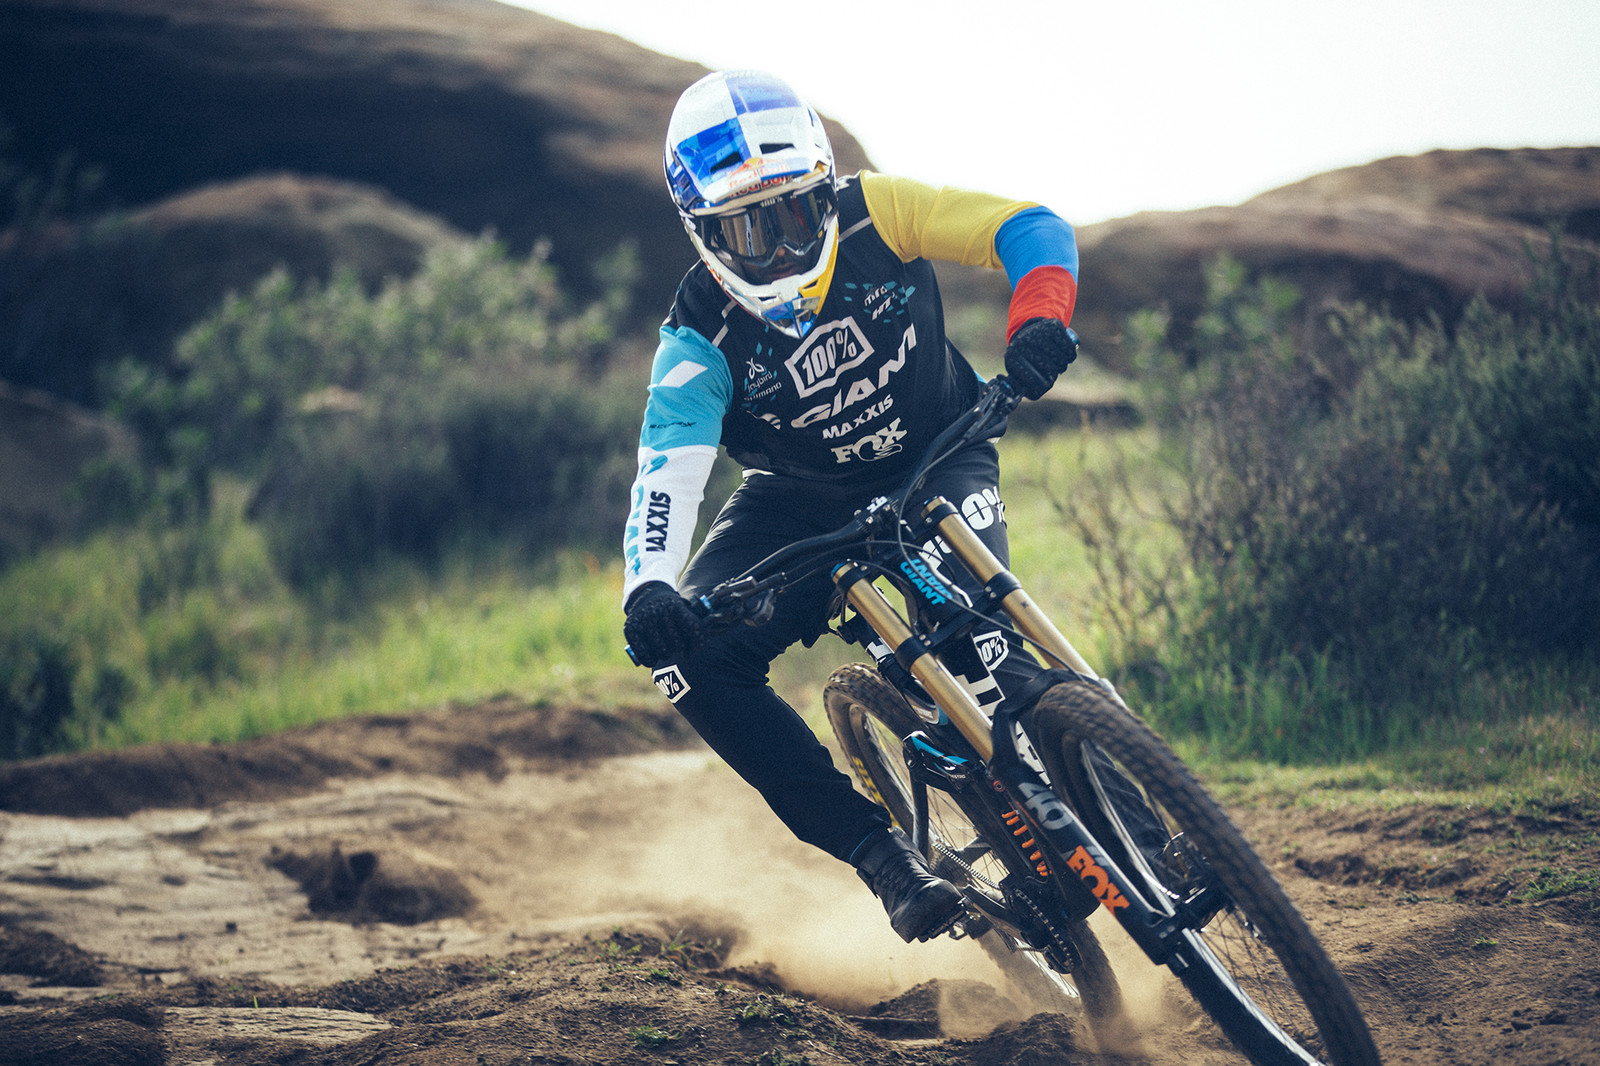 Marcelo Gutierrez, an eight-time DH national champion in his home nation of Colombia, is pictured here on his 2019 Giant Glory race bike. Gutierrez already has two race wins in 2019 and is again focused on major downhill races around the world including the UCI World Cup series.